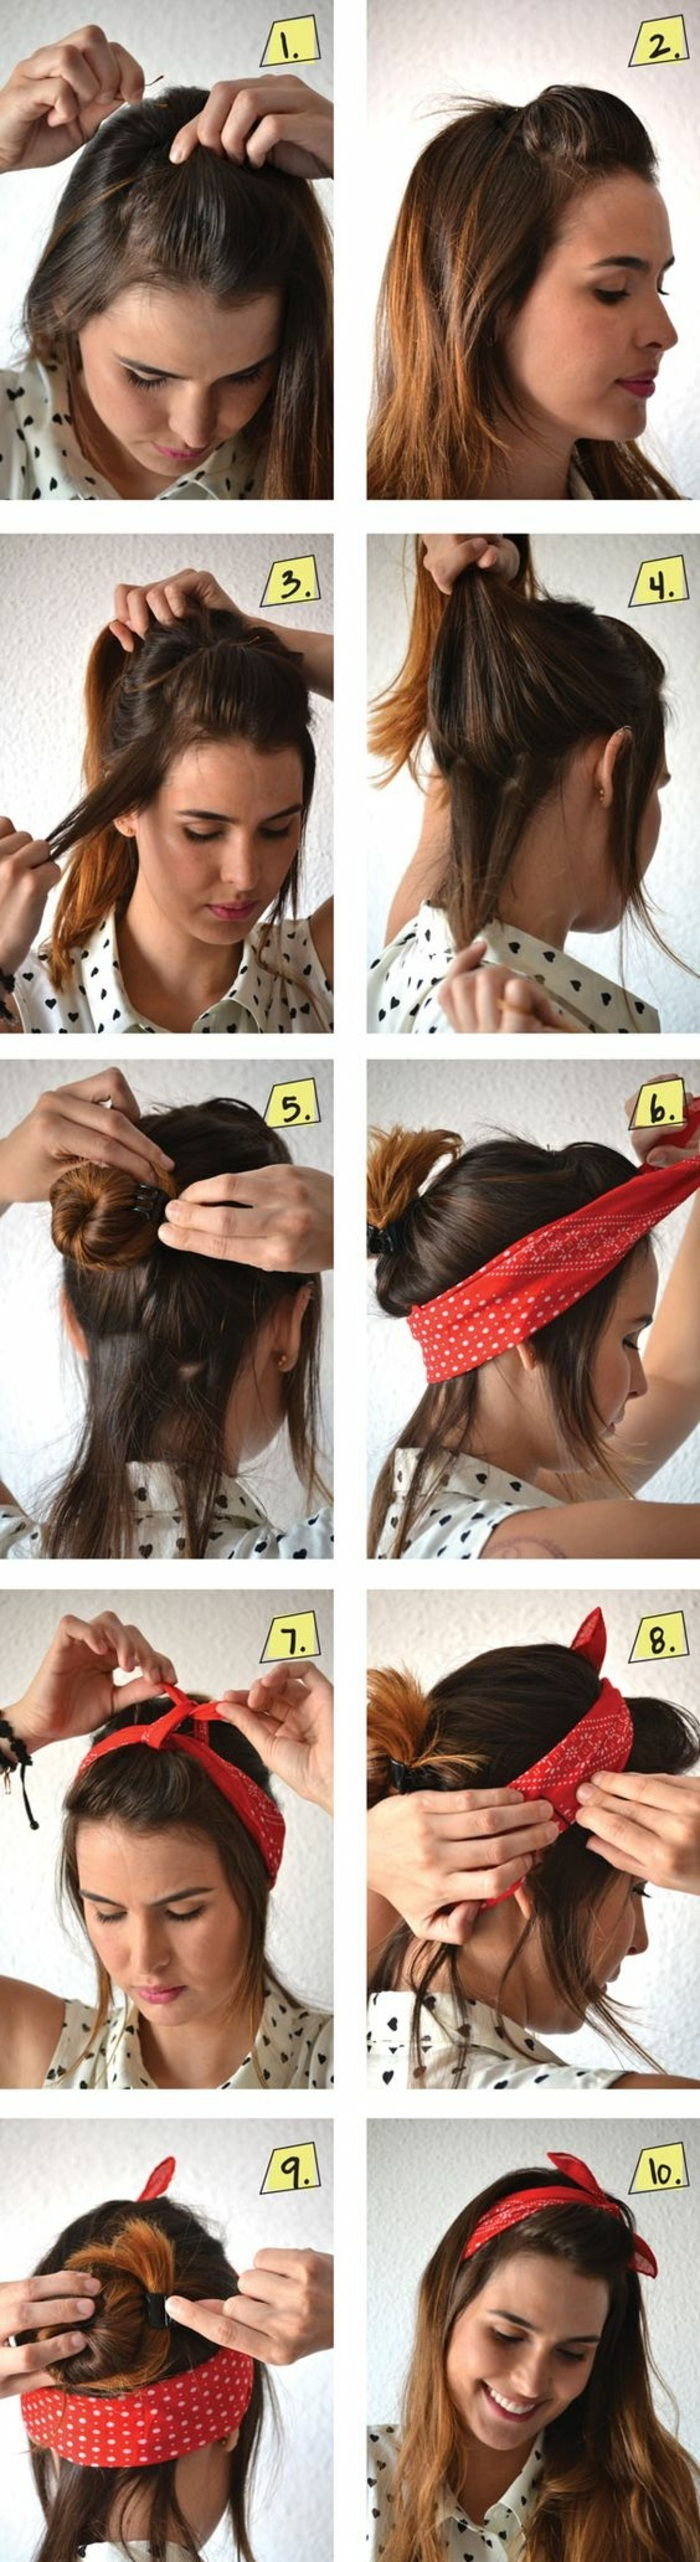 hairstyles with hairband to make yourself, medium-long, brown hair